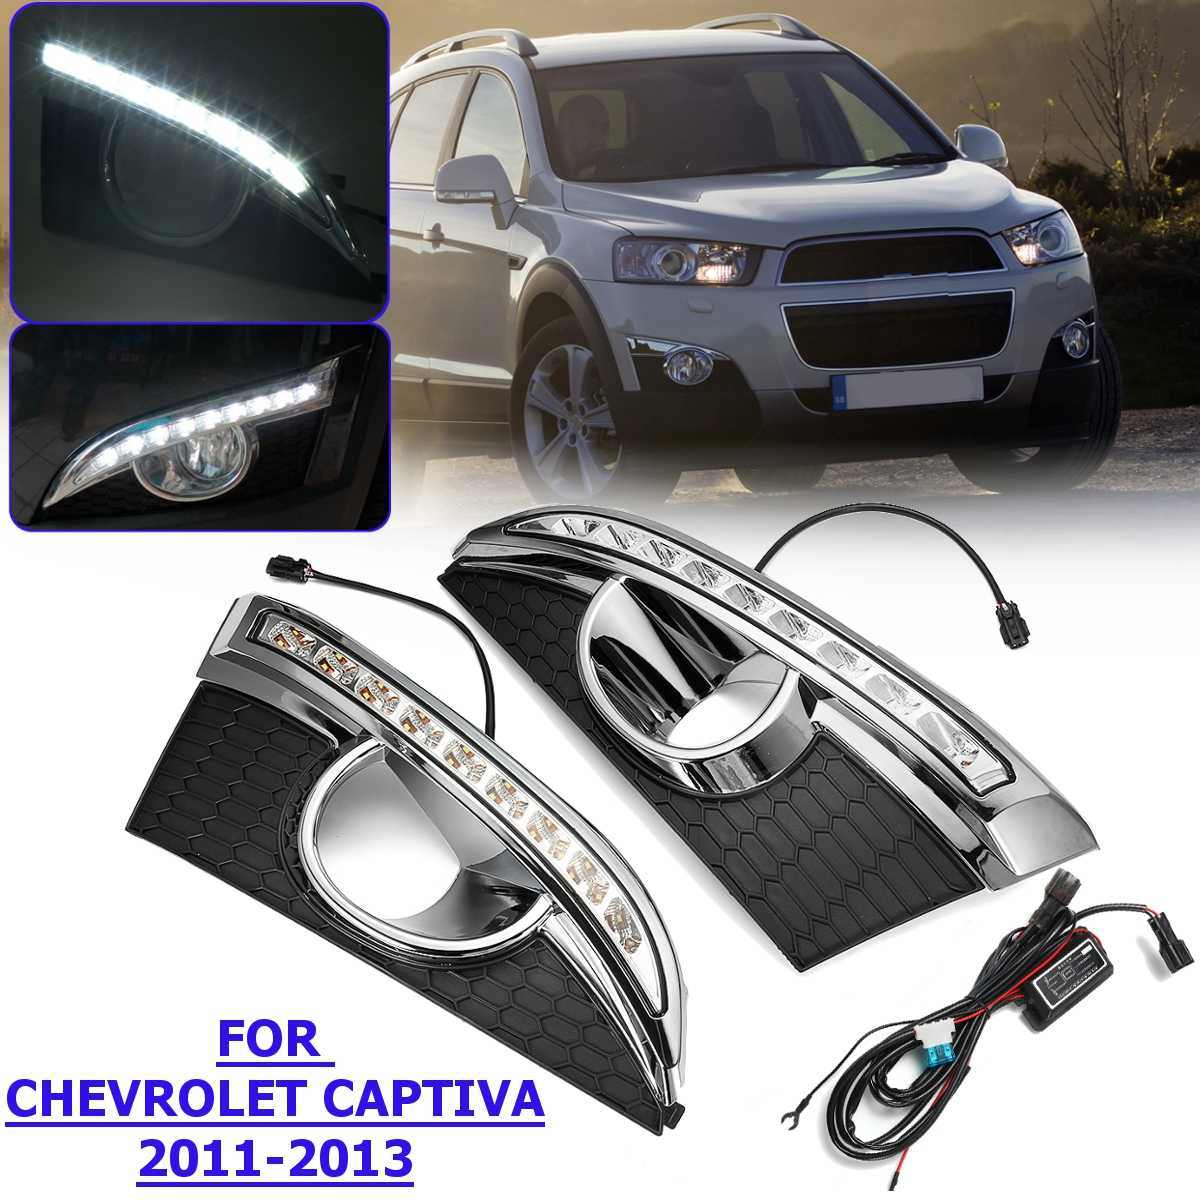 12V 2Pcs Front LED Daytime Running Light DRL FOR CHEVROLET CAPTIVA 2011 2012 2013 Driving Fog Lamp Headlight White Car Styling12V 2Pcs Front LED Daytime Running Light DRL FOR CHEVROLET CAPTIVA 2011 2012 2013 Driving Fog Lamp Headlight White Car Styling